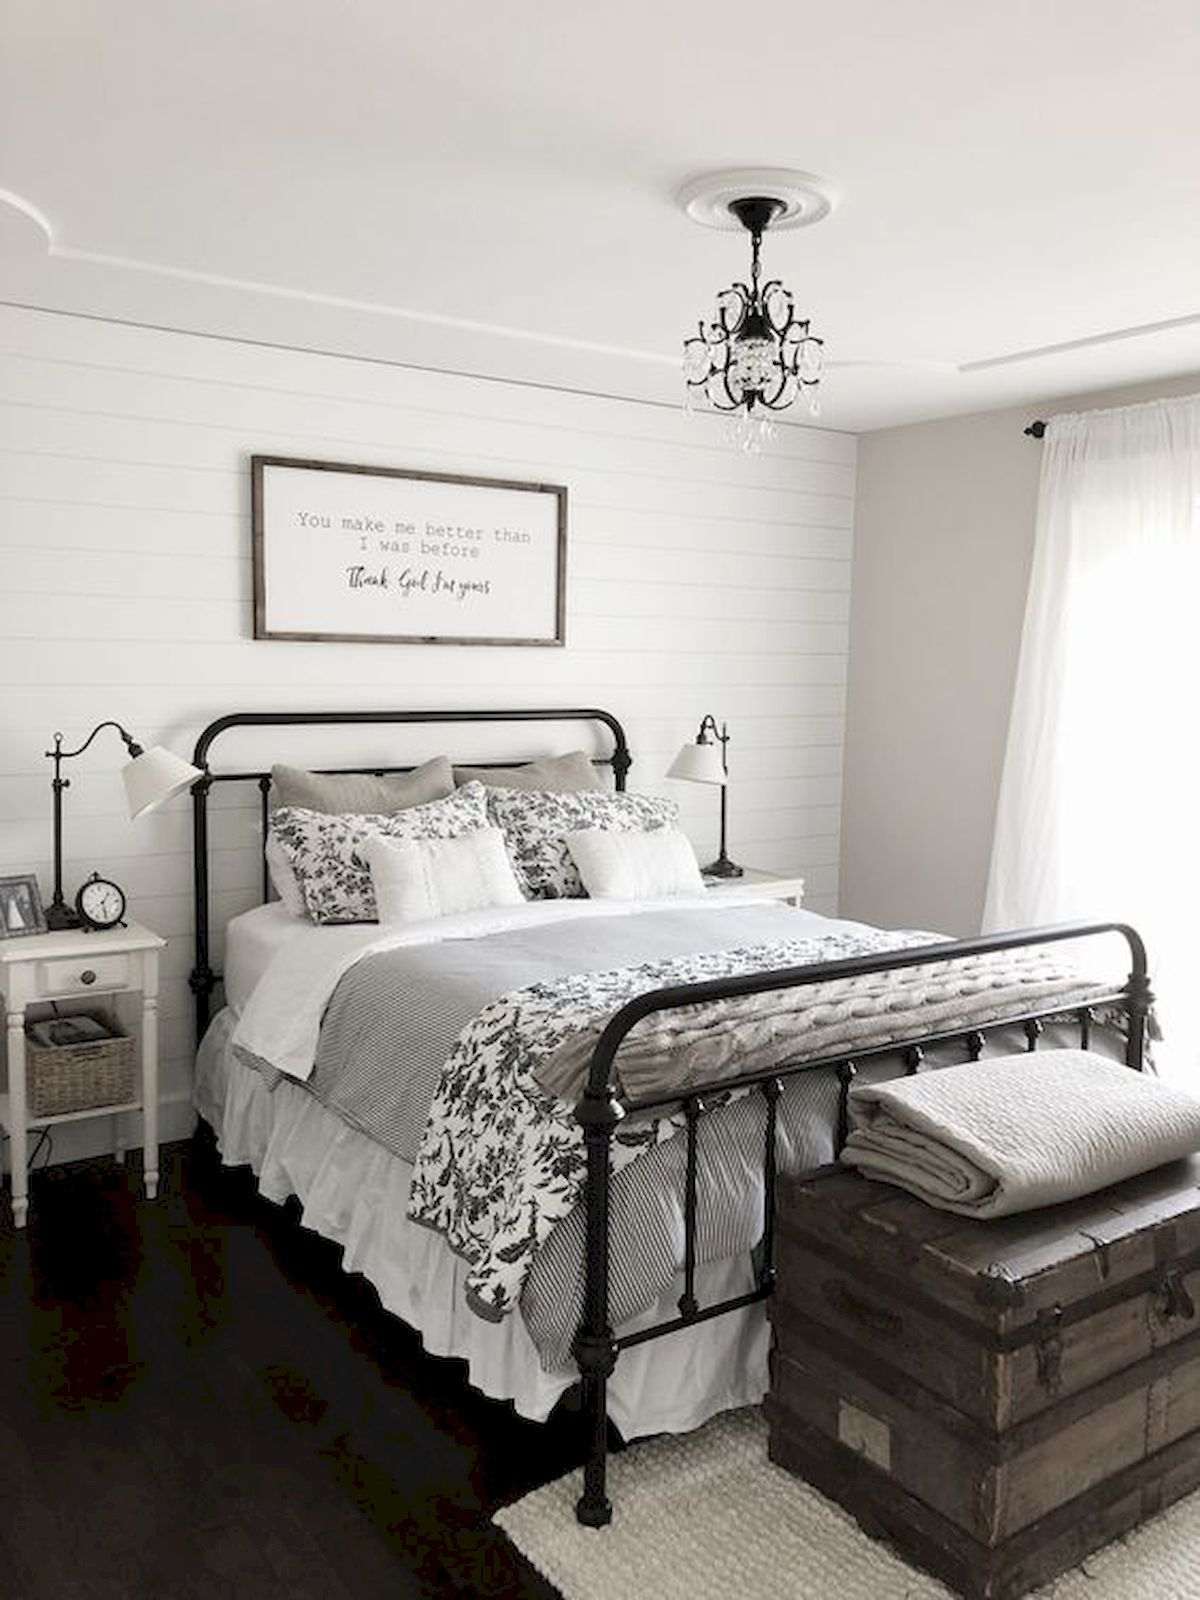 2019 Best Farmhouse Bedding Decor Ideas And Remodel